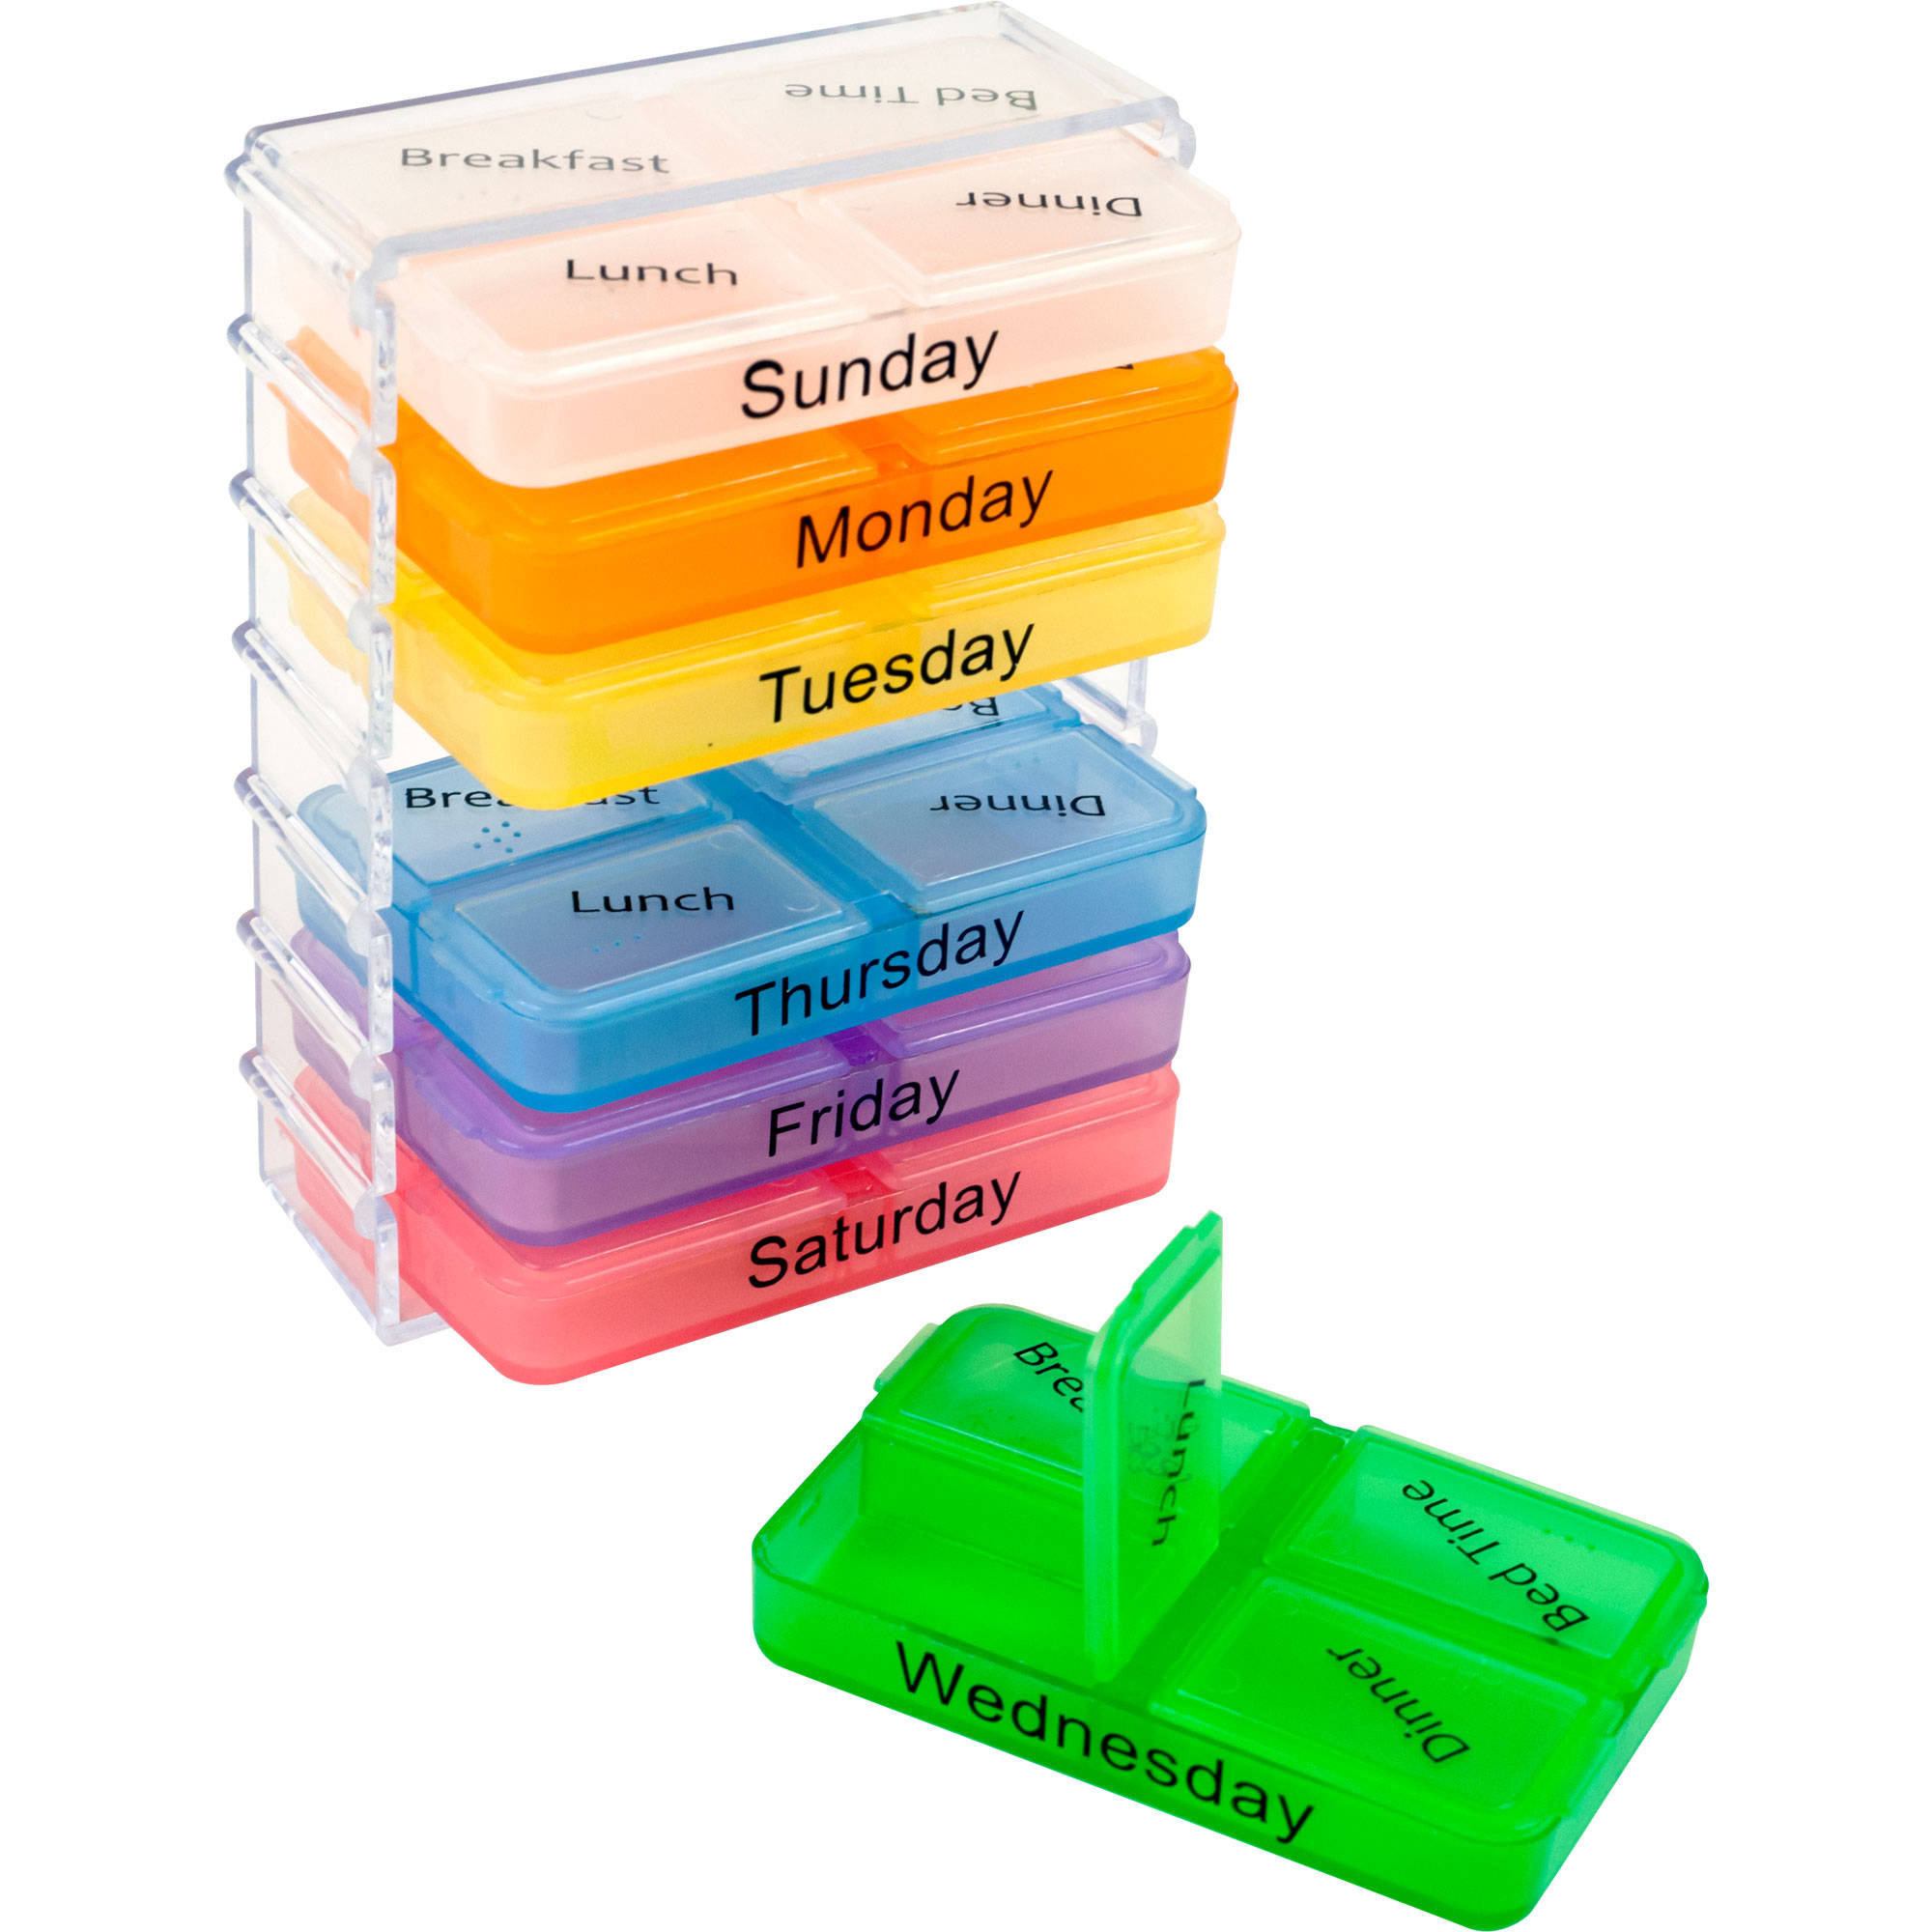 Remedy Daily Pill and Vitamin Organizer